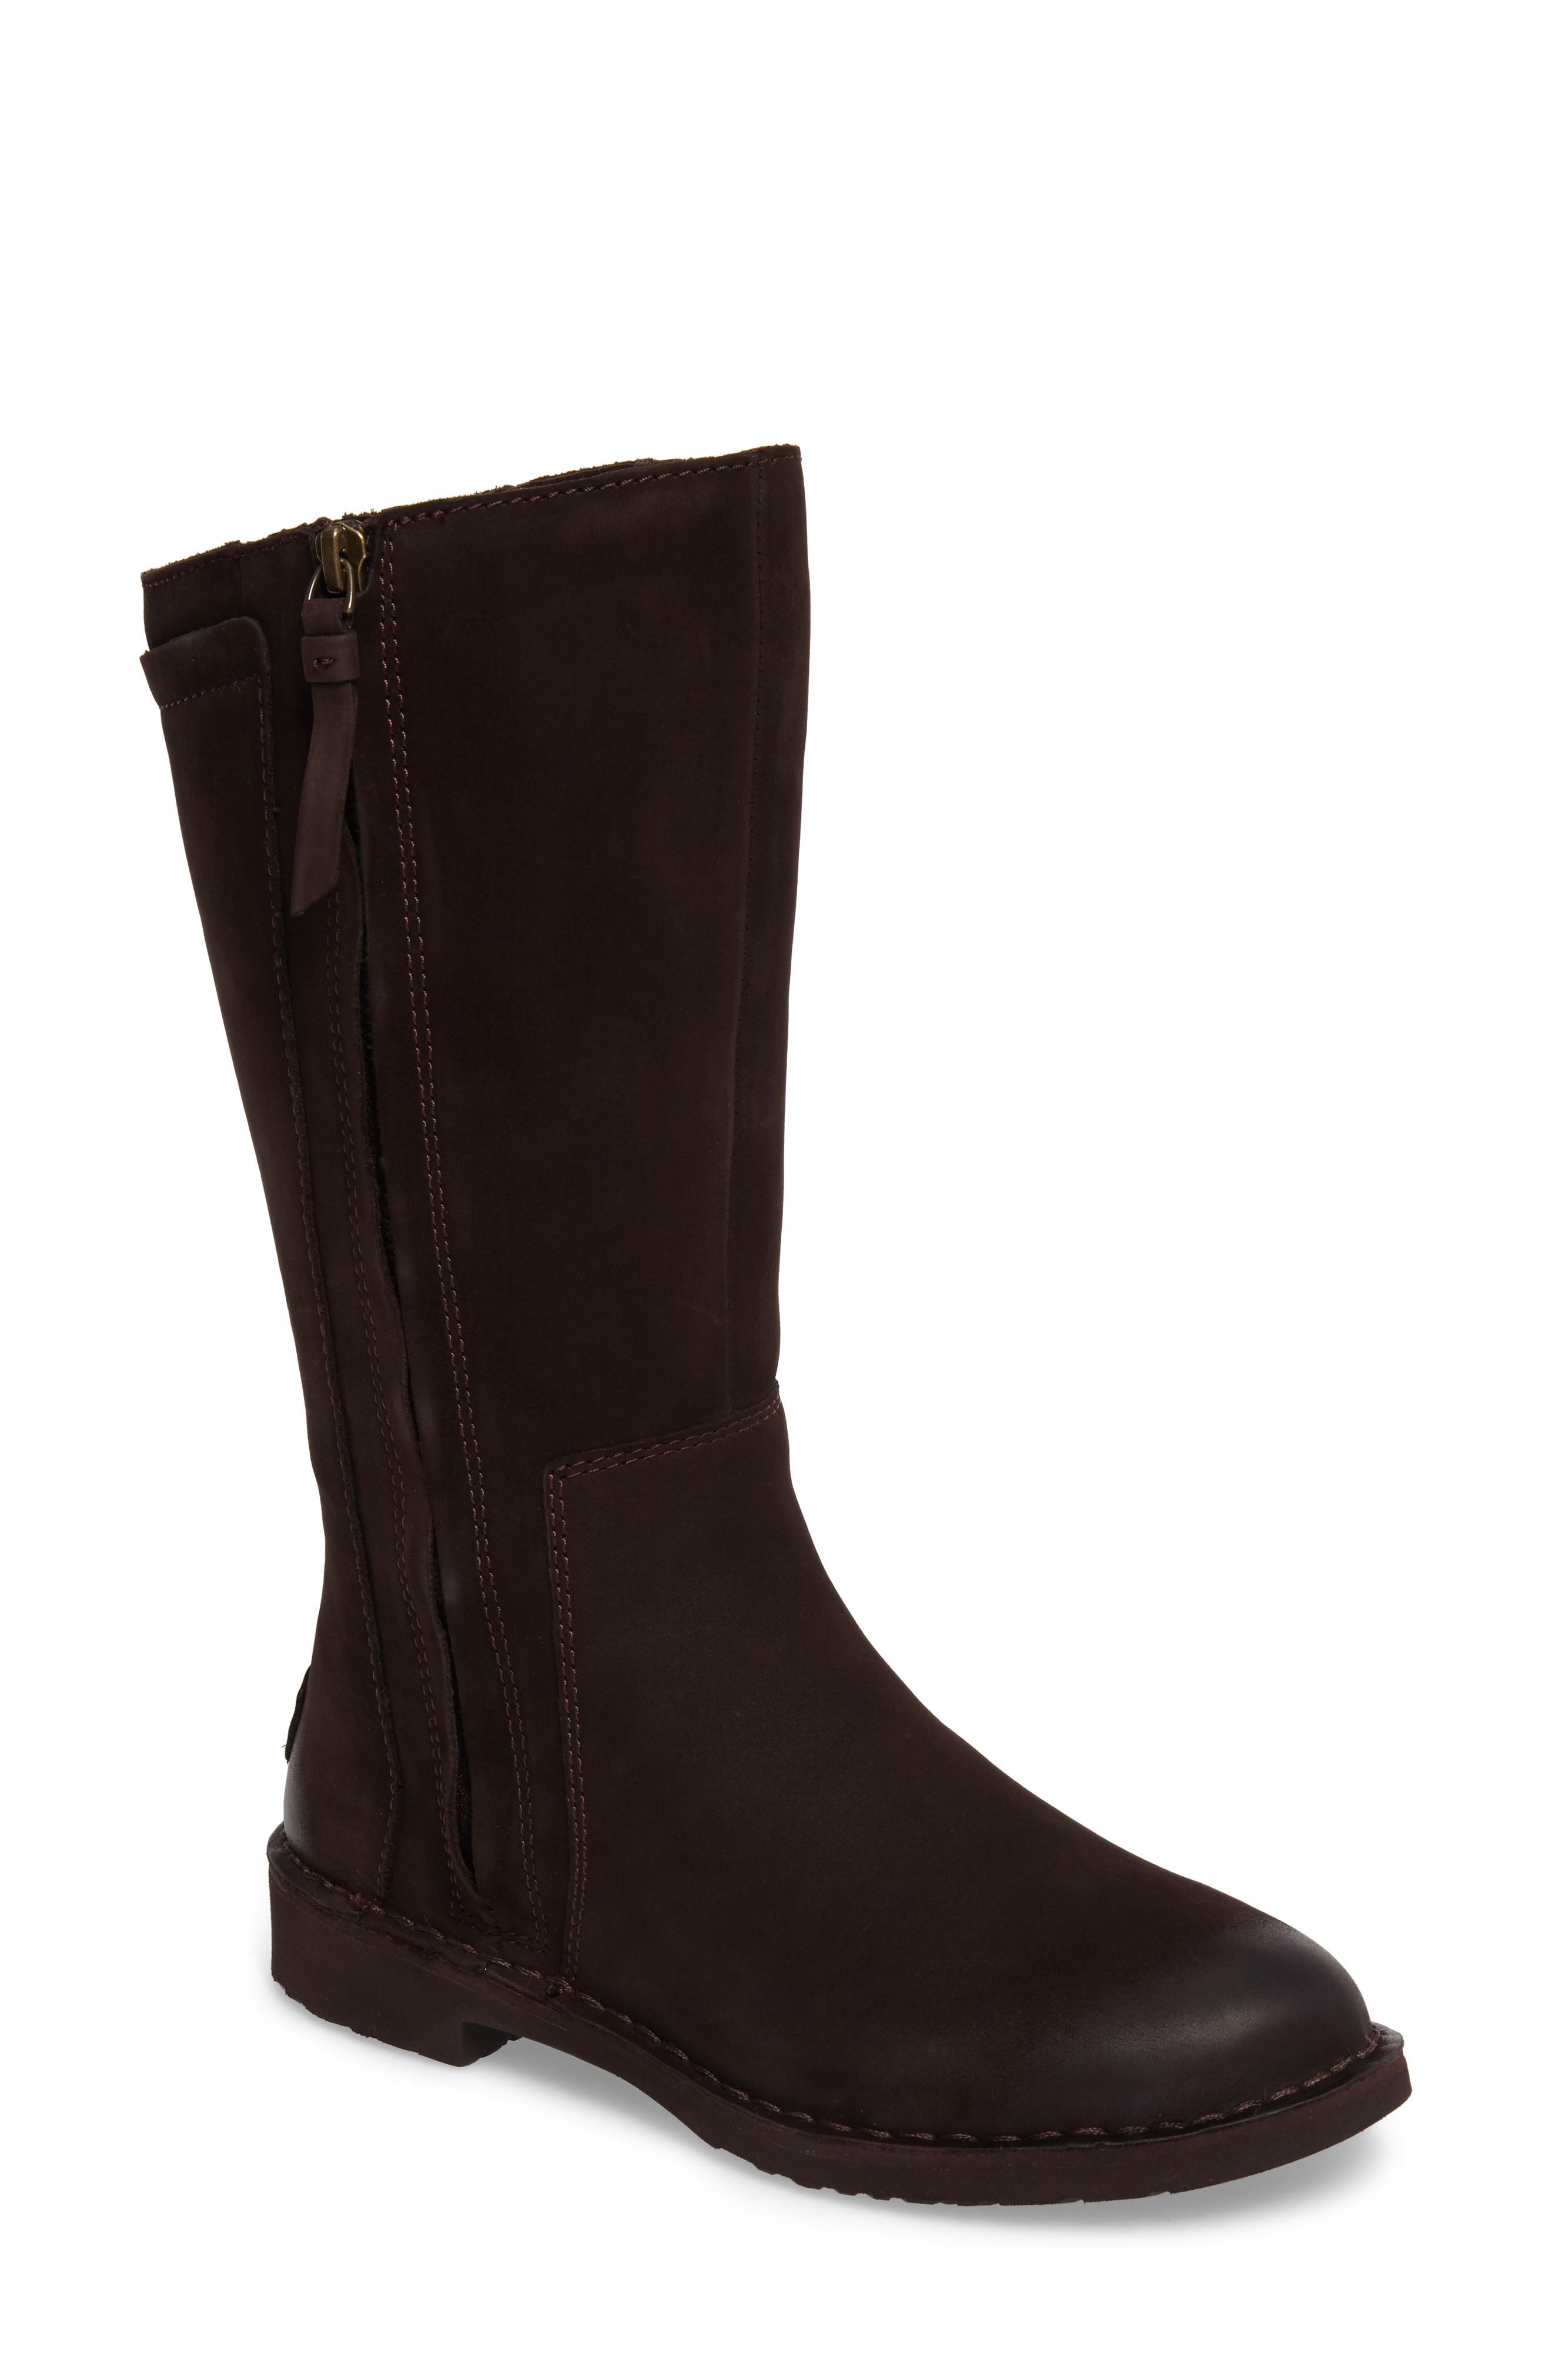 Alternate Image 1 Selected - UGG® Elly Boot (Women)